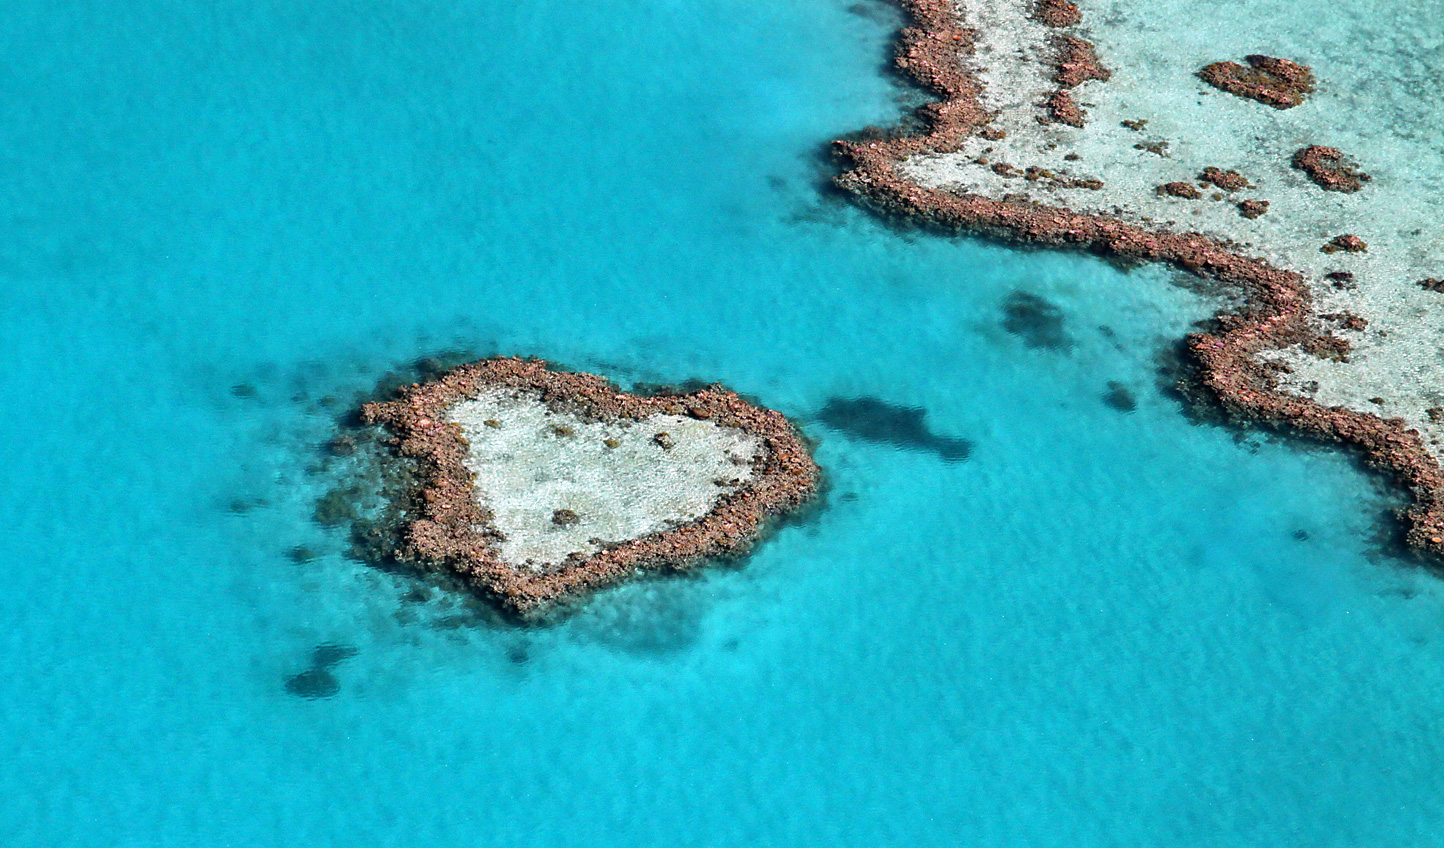 Fall in love with the Great Barrier Reef